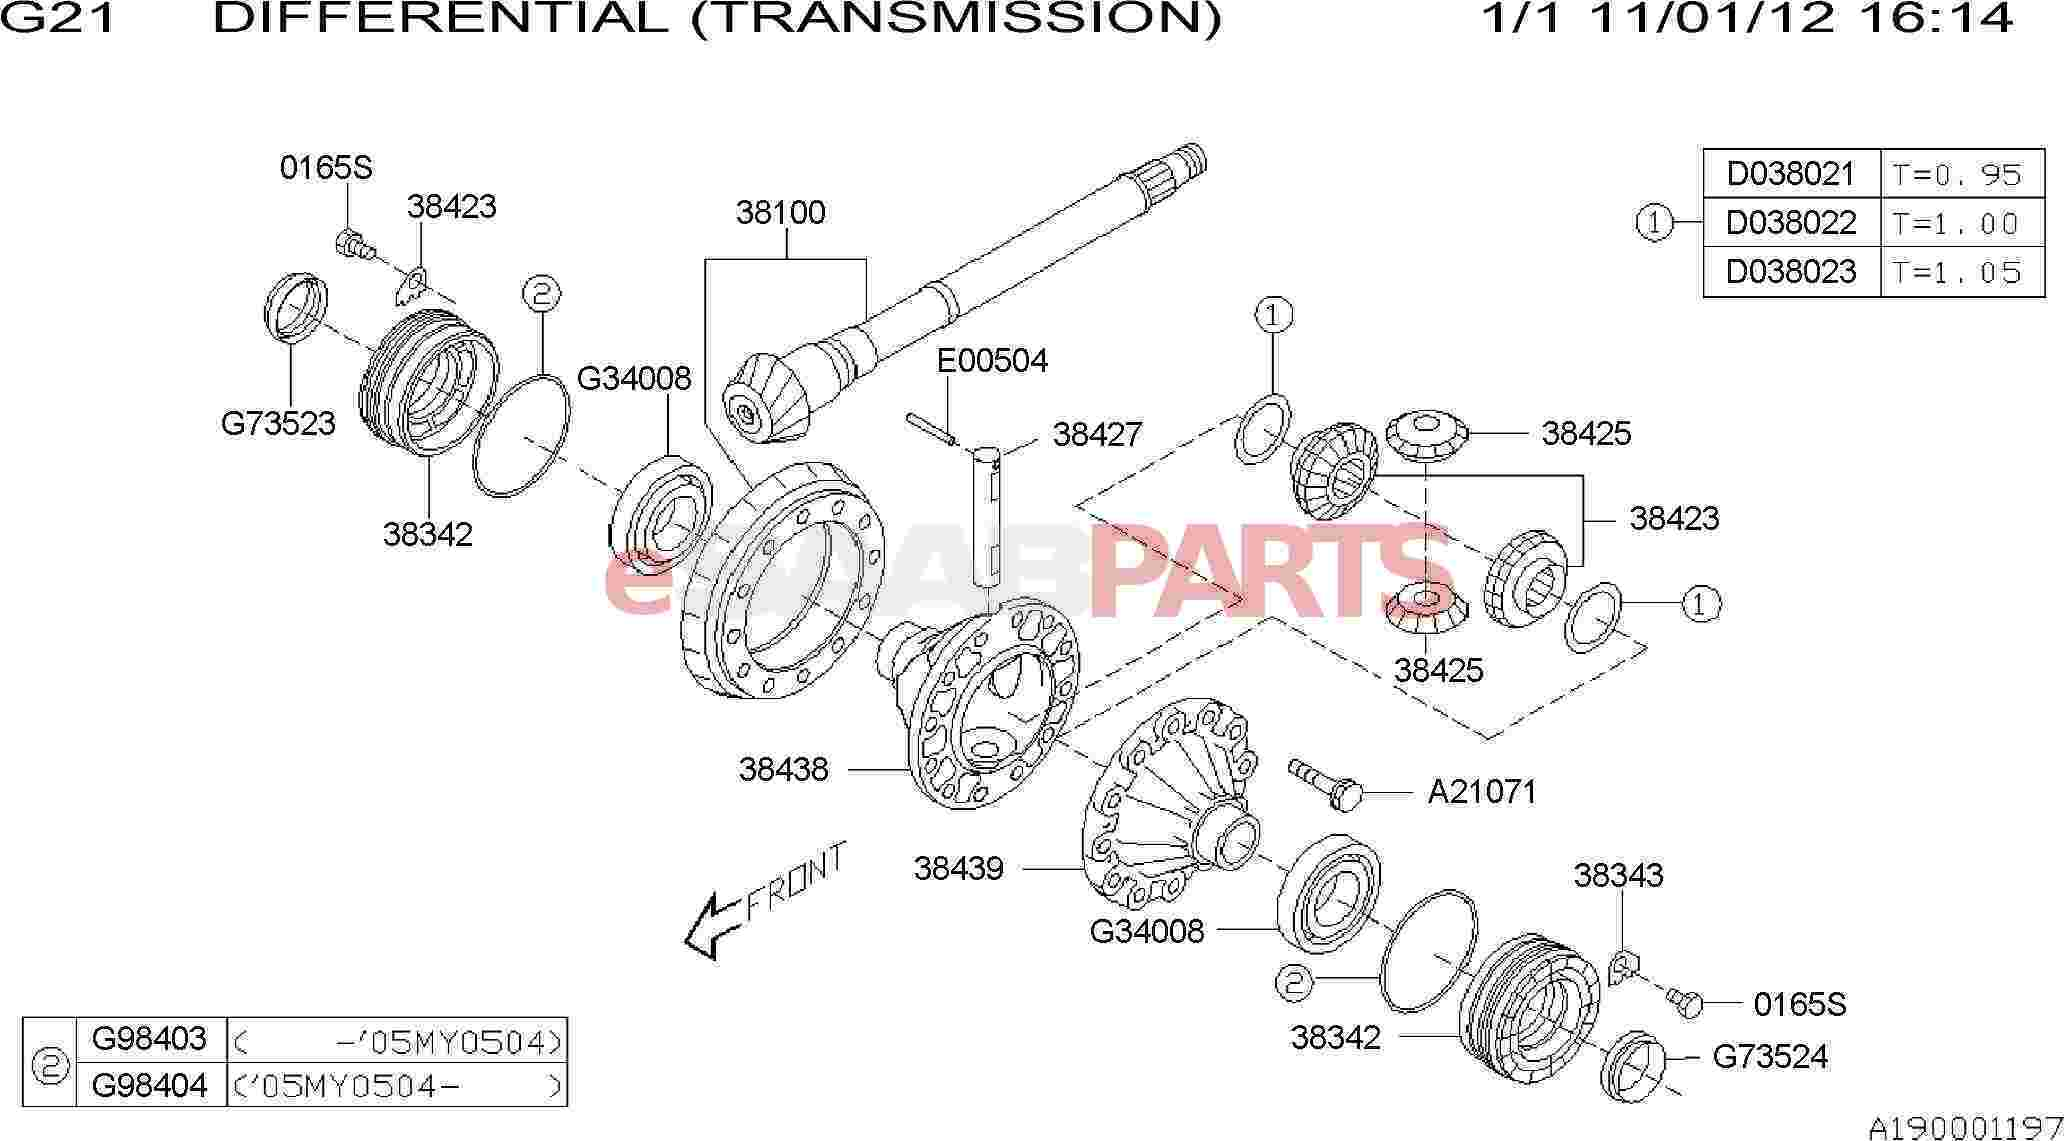 gear set diagram [32010087] saab gear set-hypoid - genuine saab parts from ... drum set diagram